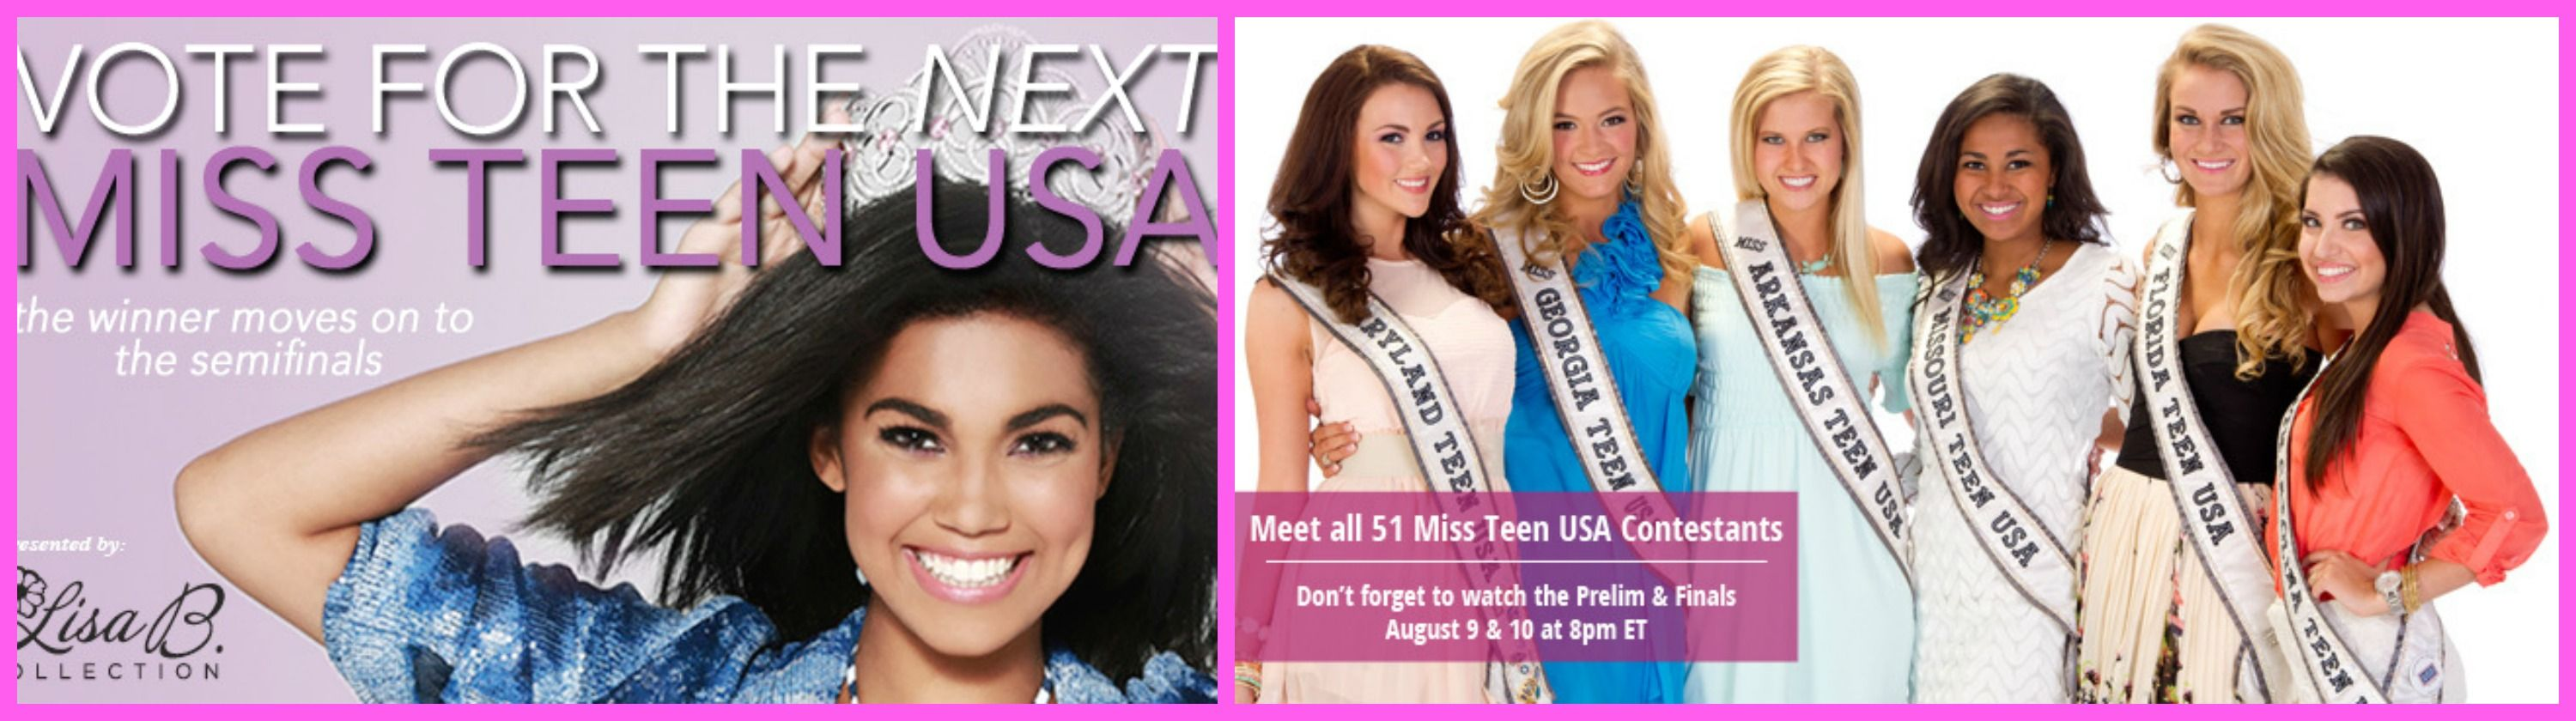 Miss Teen USA is arouhttp://www.allglamallthetime.com/2013/07/miss-teen-usa-2013-pageant-will-be-held.htmlnd the corner !